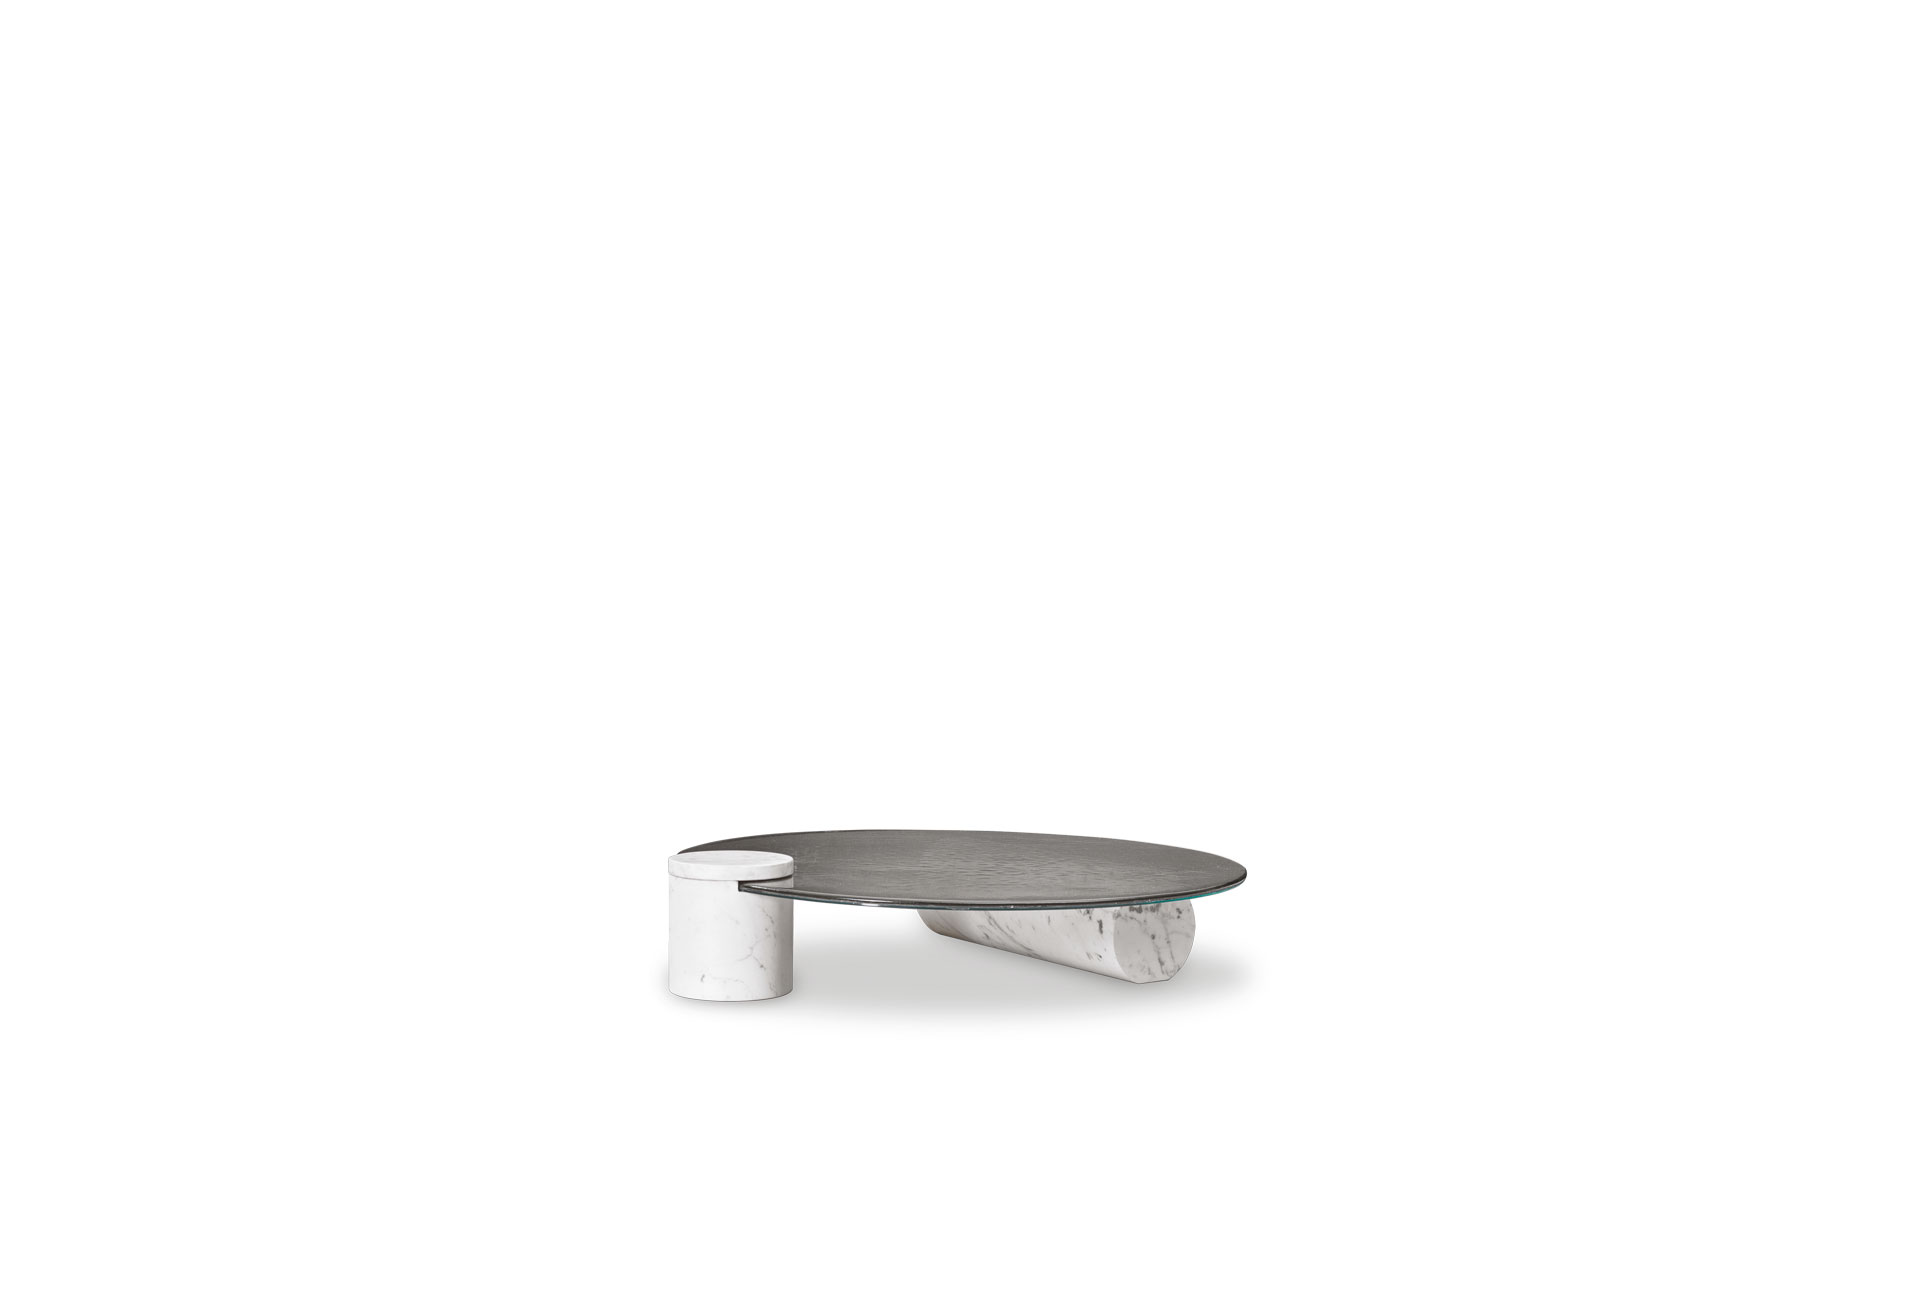 verre particulier small table baxter